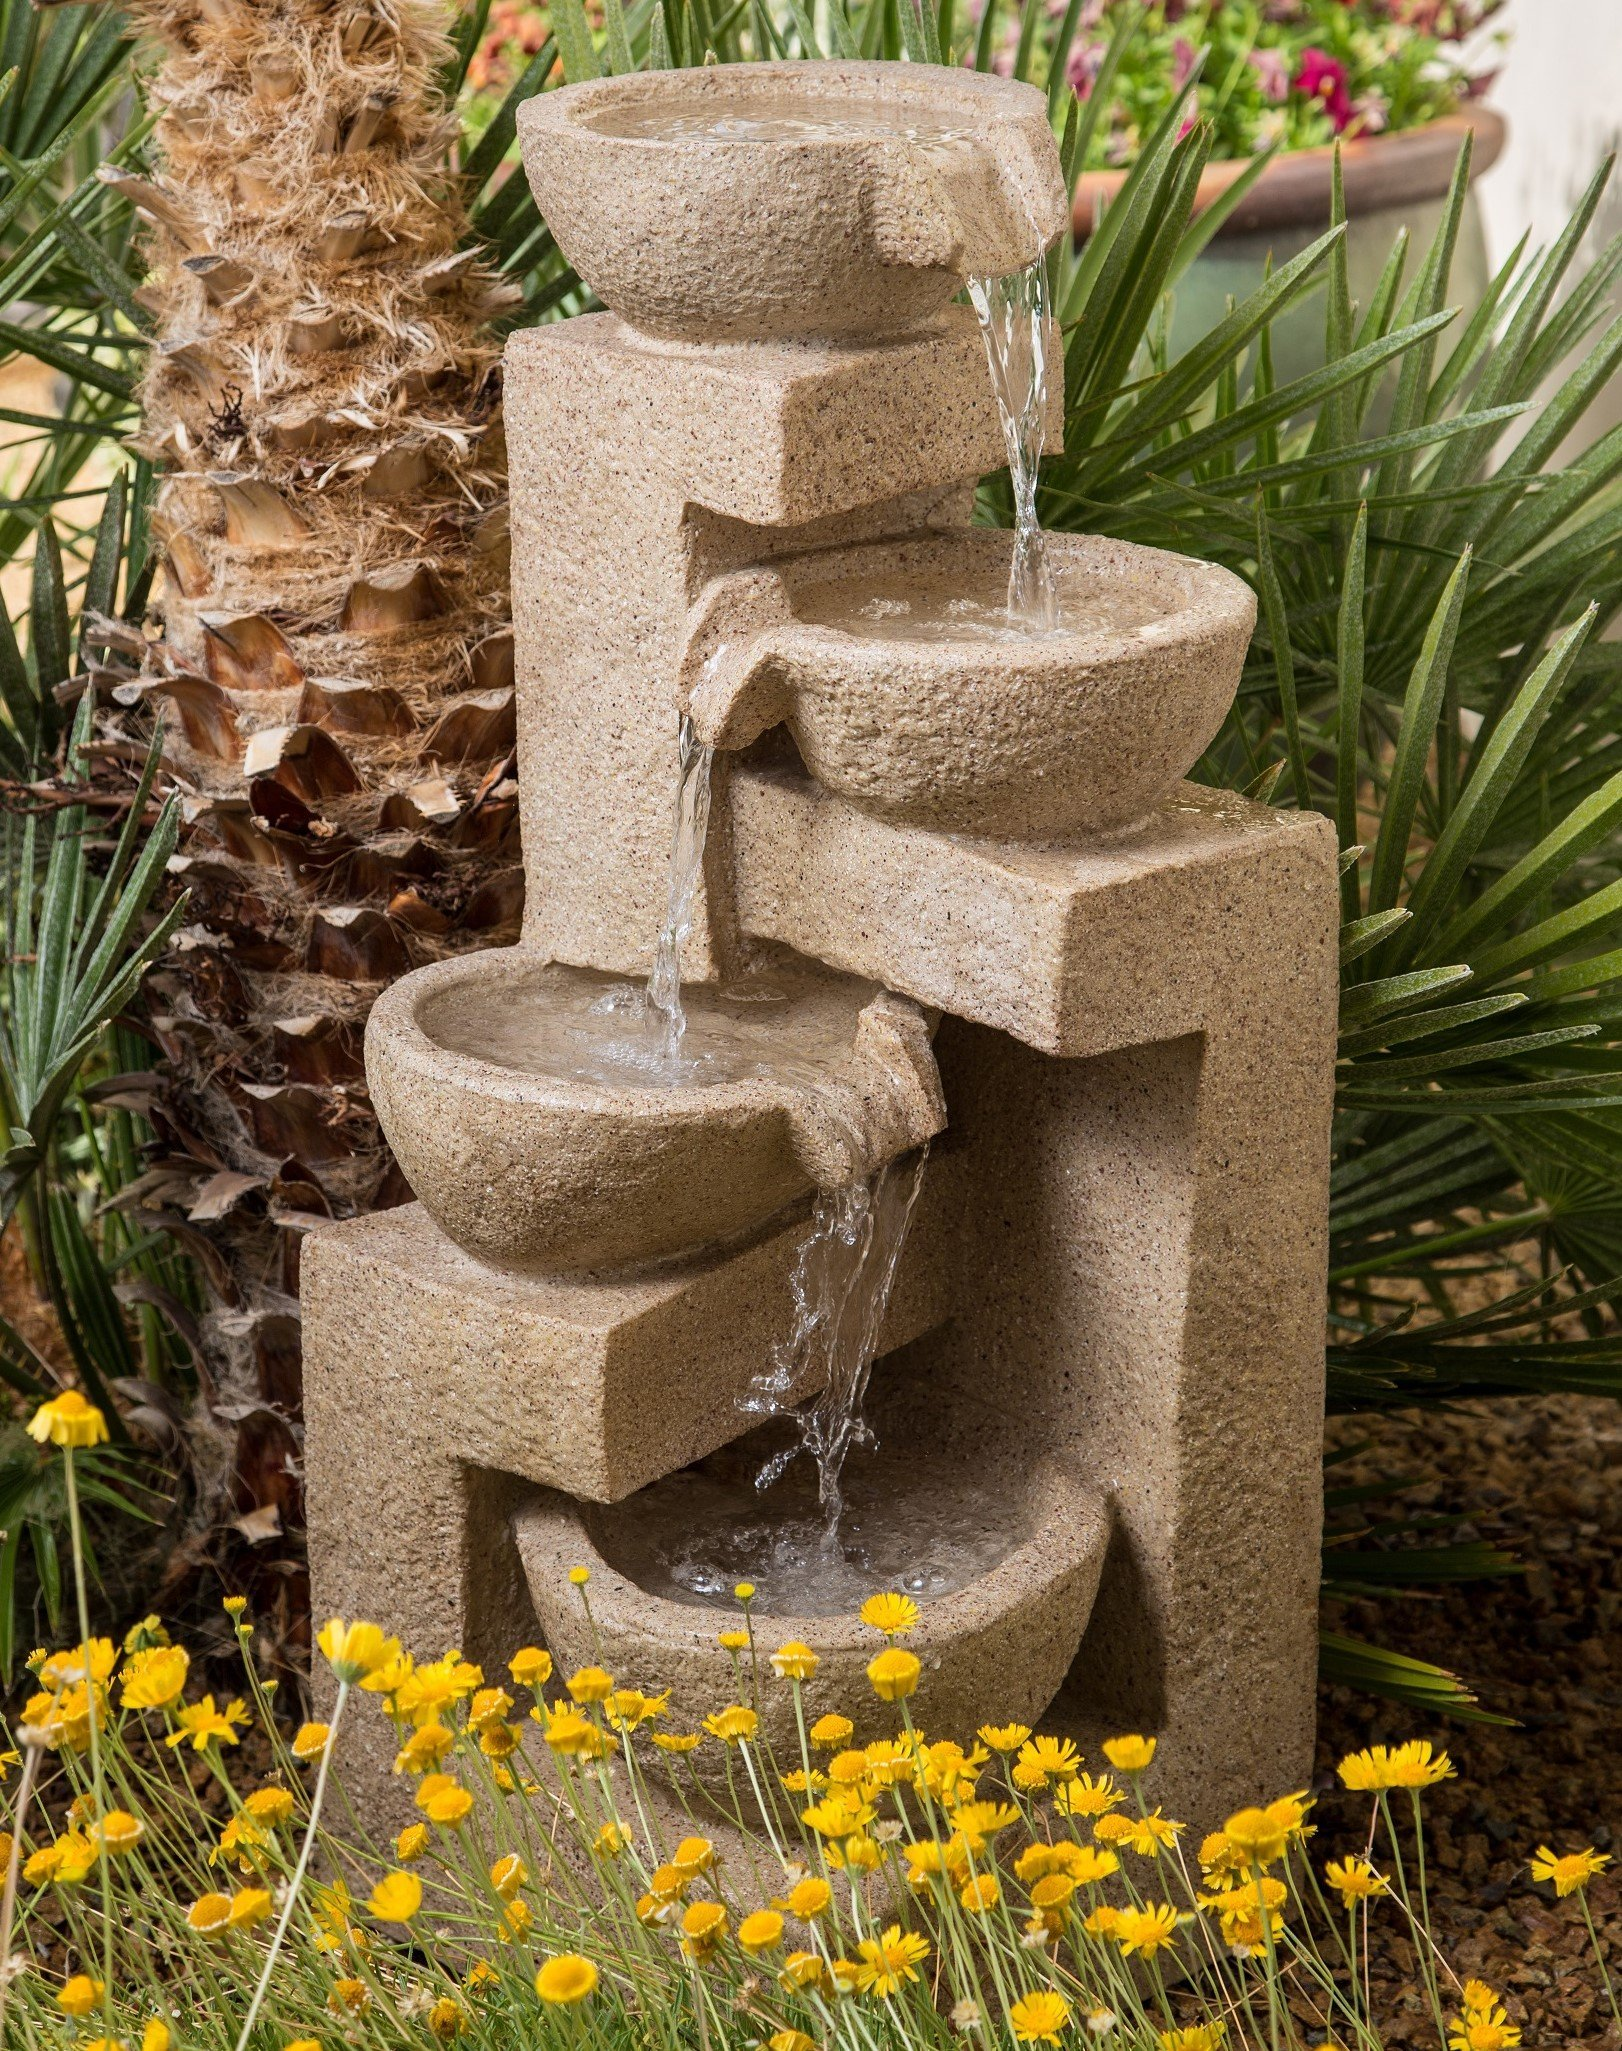 31'' Flowing Bowl Garden Fountain - Great Water Feature for Patios, Outdoor Spaces, Gardens, Homes. Waterfall Style Flow Fountain Pump Included